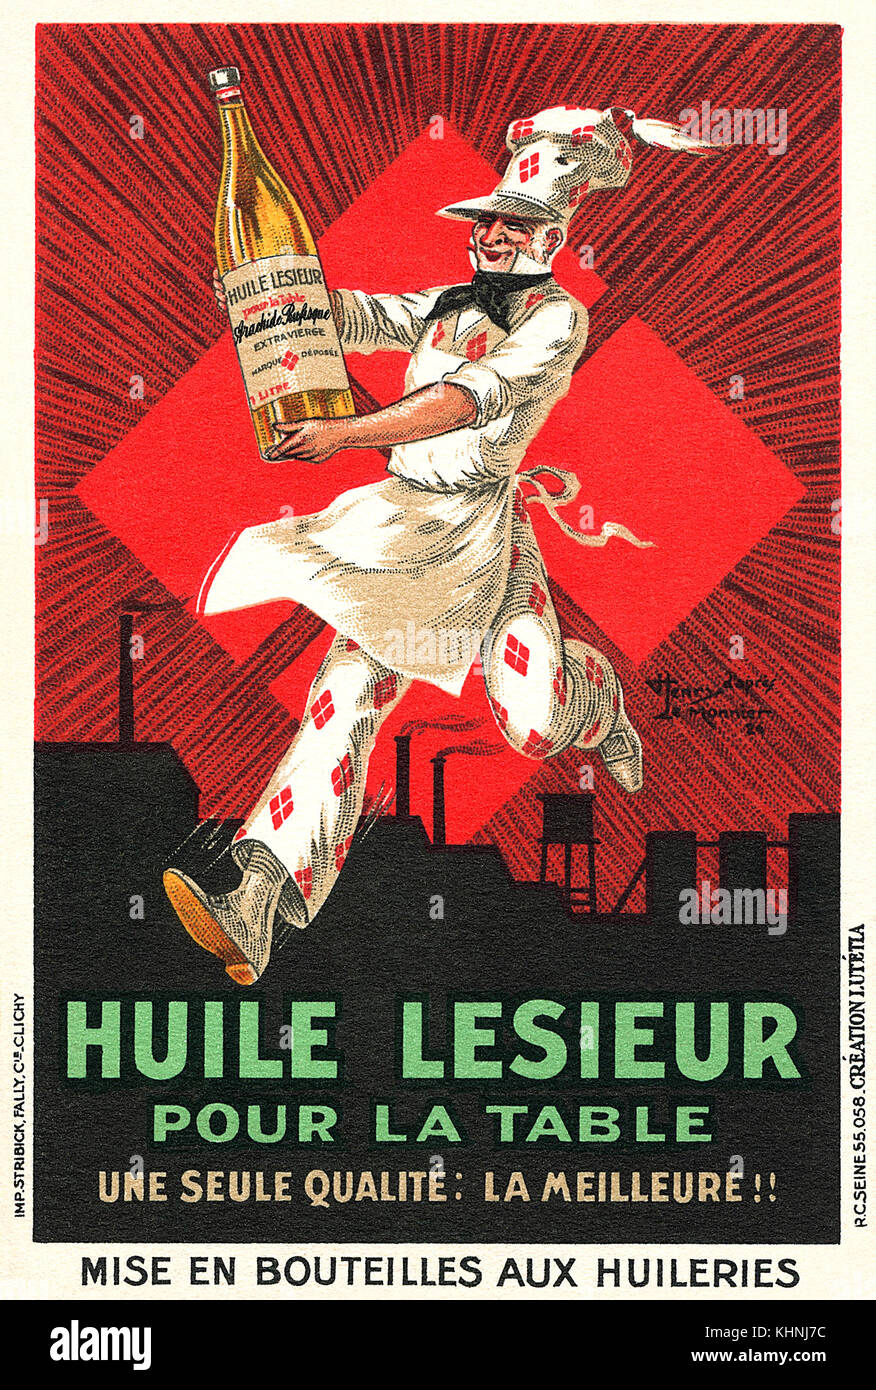 French trade card for Lesieur Oil. - Stock Image